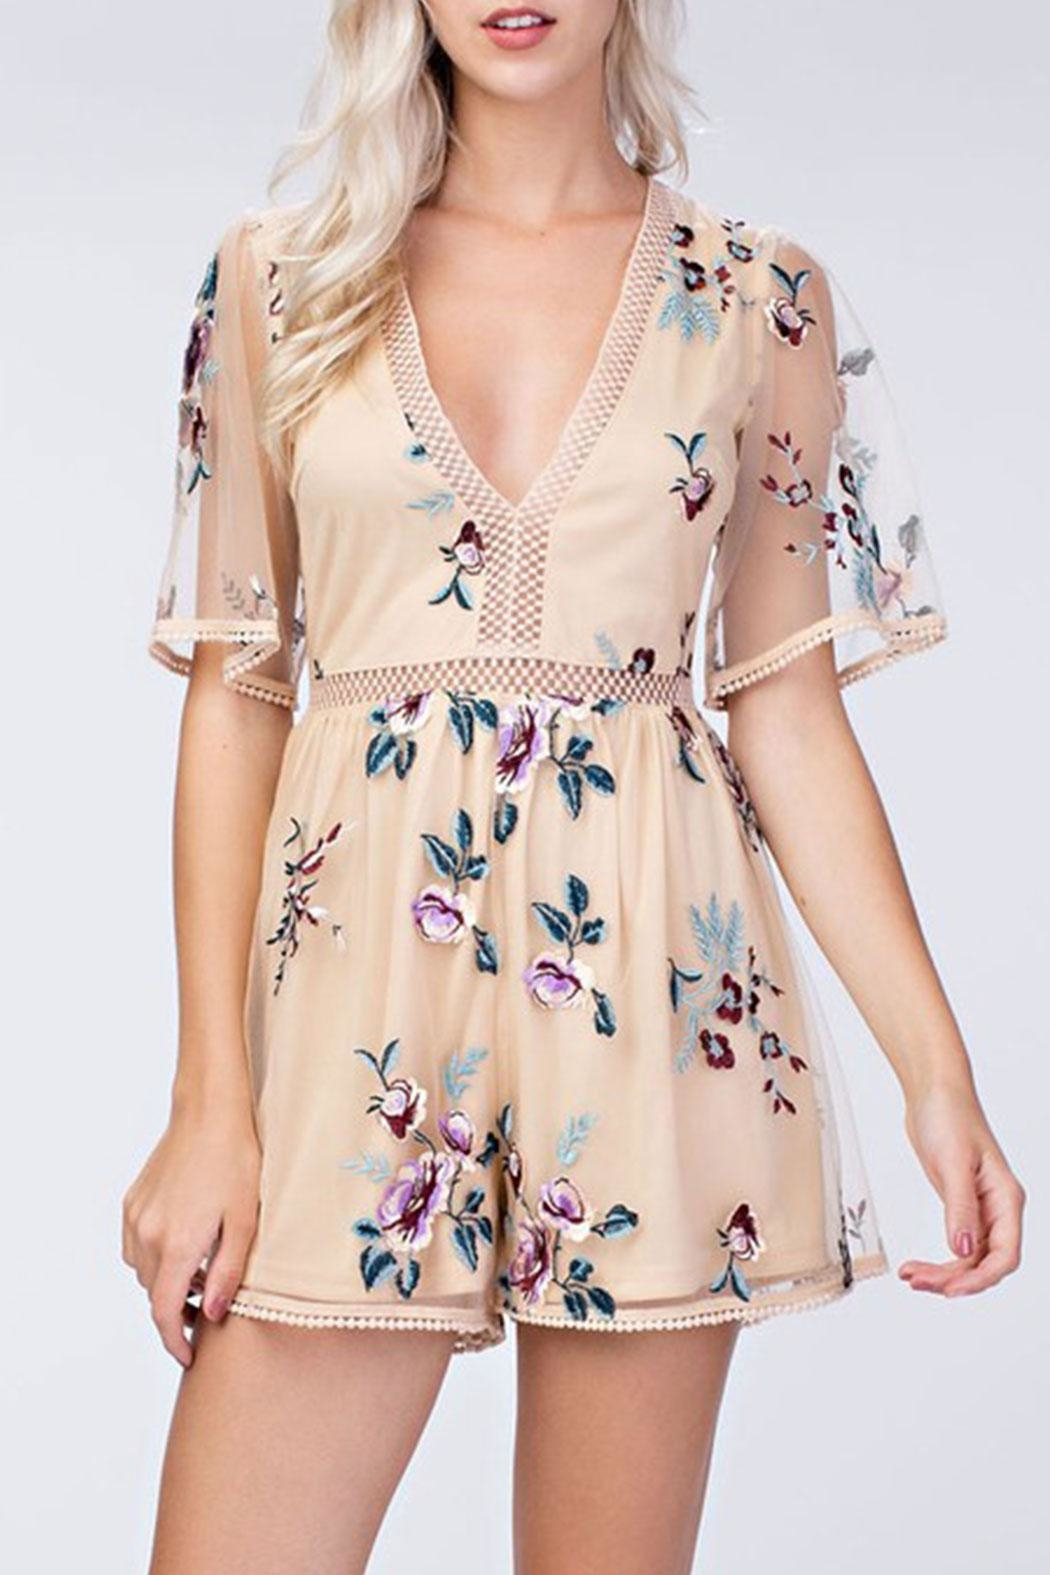 honey belle Embroidery Floral Romper - Main Image